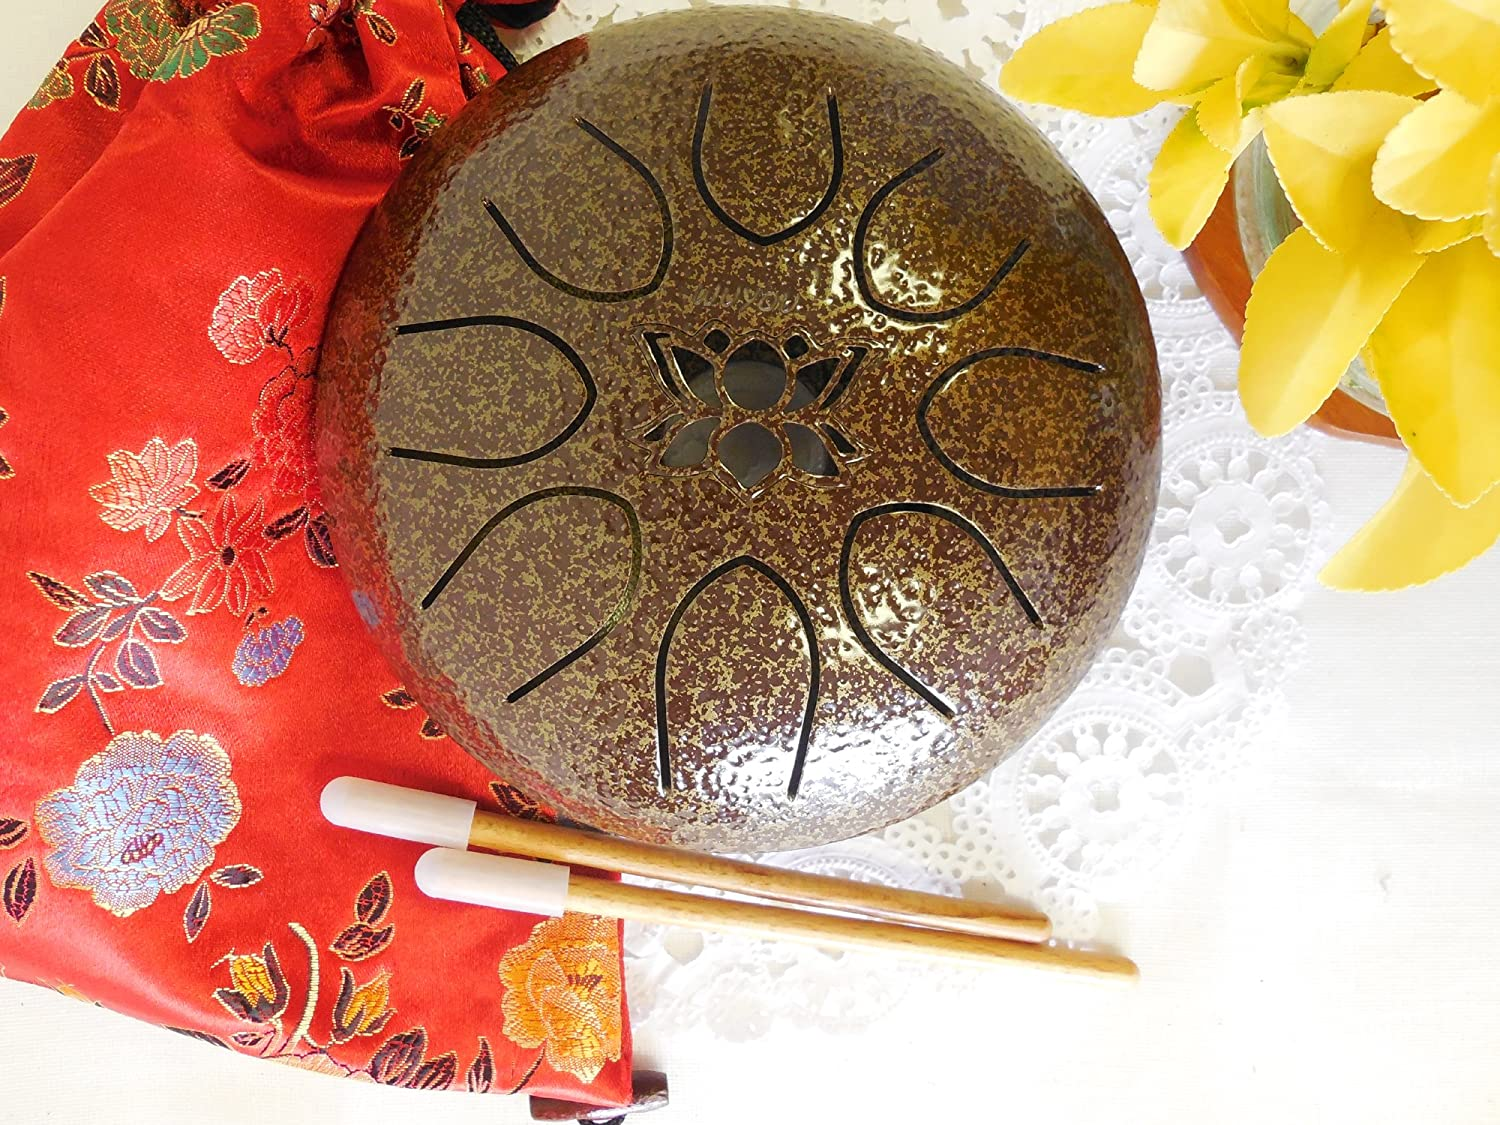 Tongue Drum Steel Hand Drum Gentle Healing Sound, Wuyou 7in UFO Lotus Symbol Musical Instrument Percussion, Brown